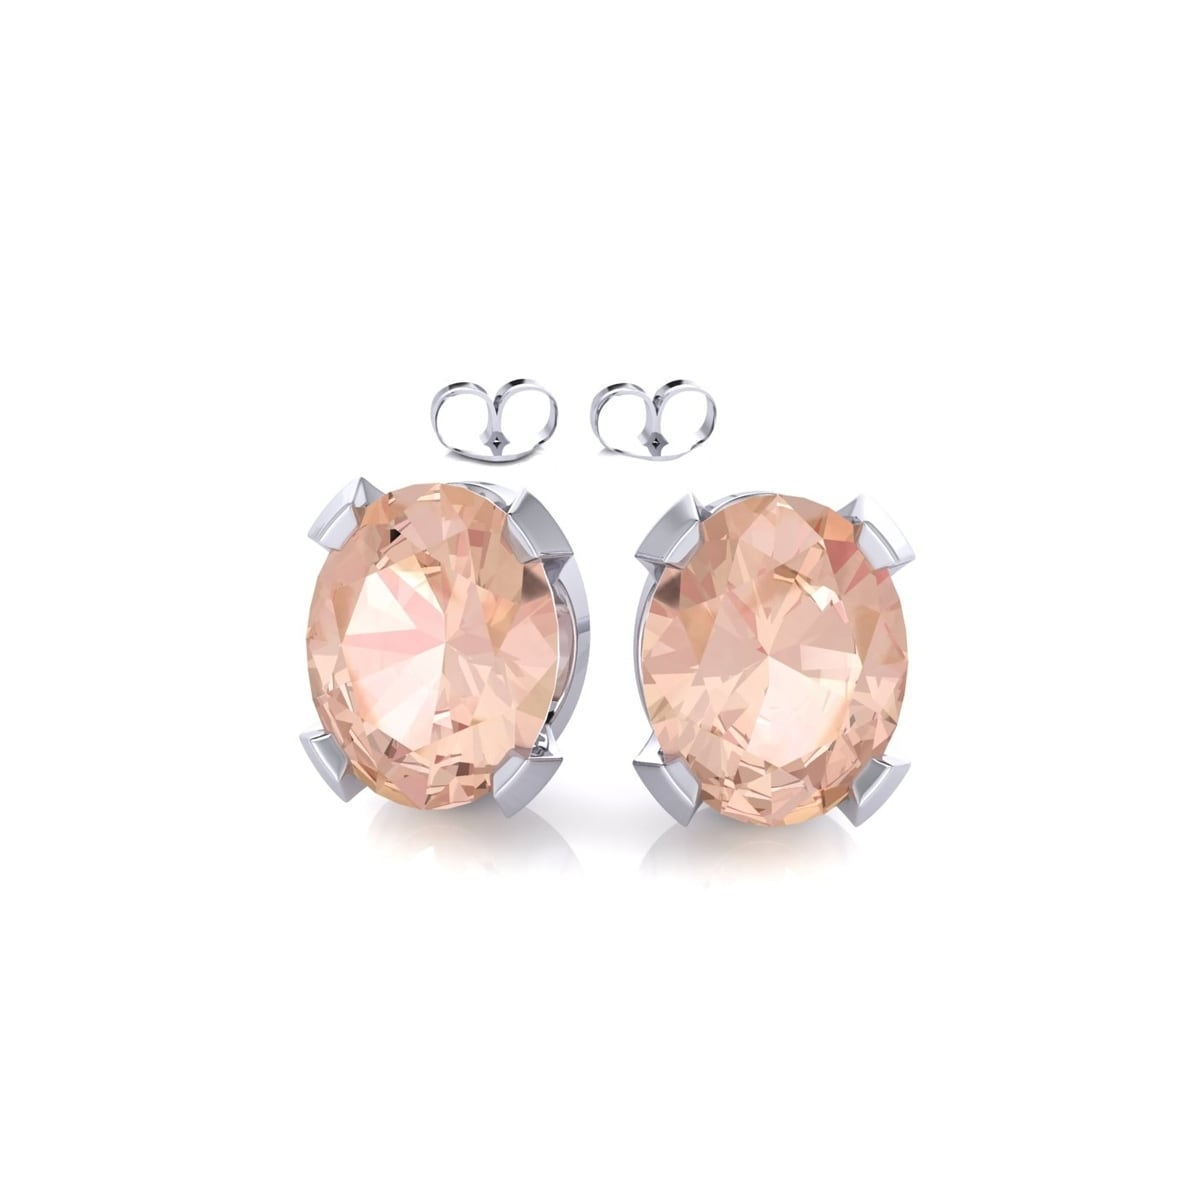 square earringssterling lovely earrings of diamond silver stud unique gold cz rose morganite